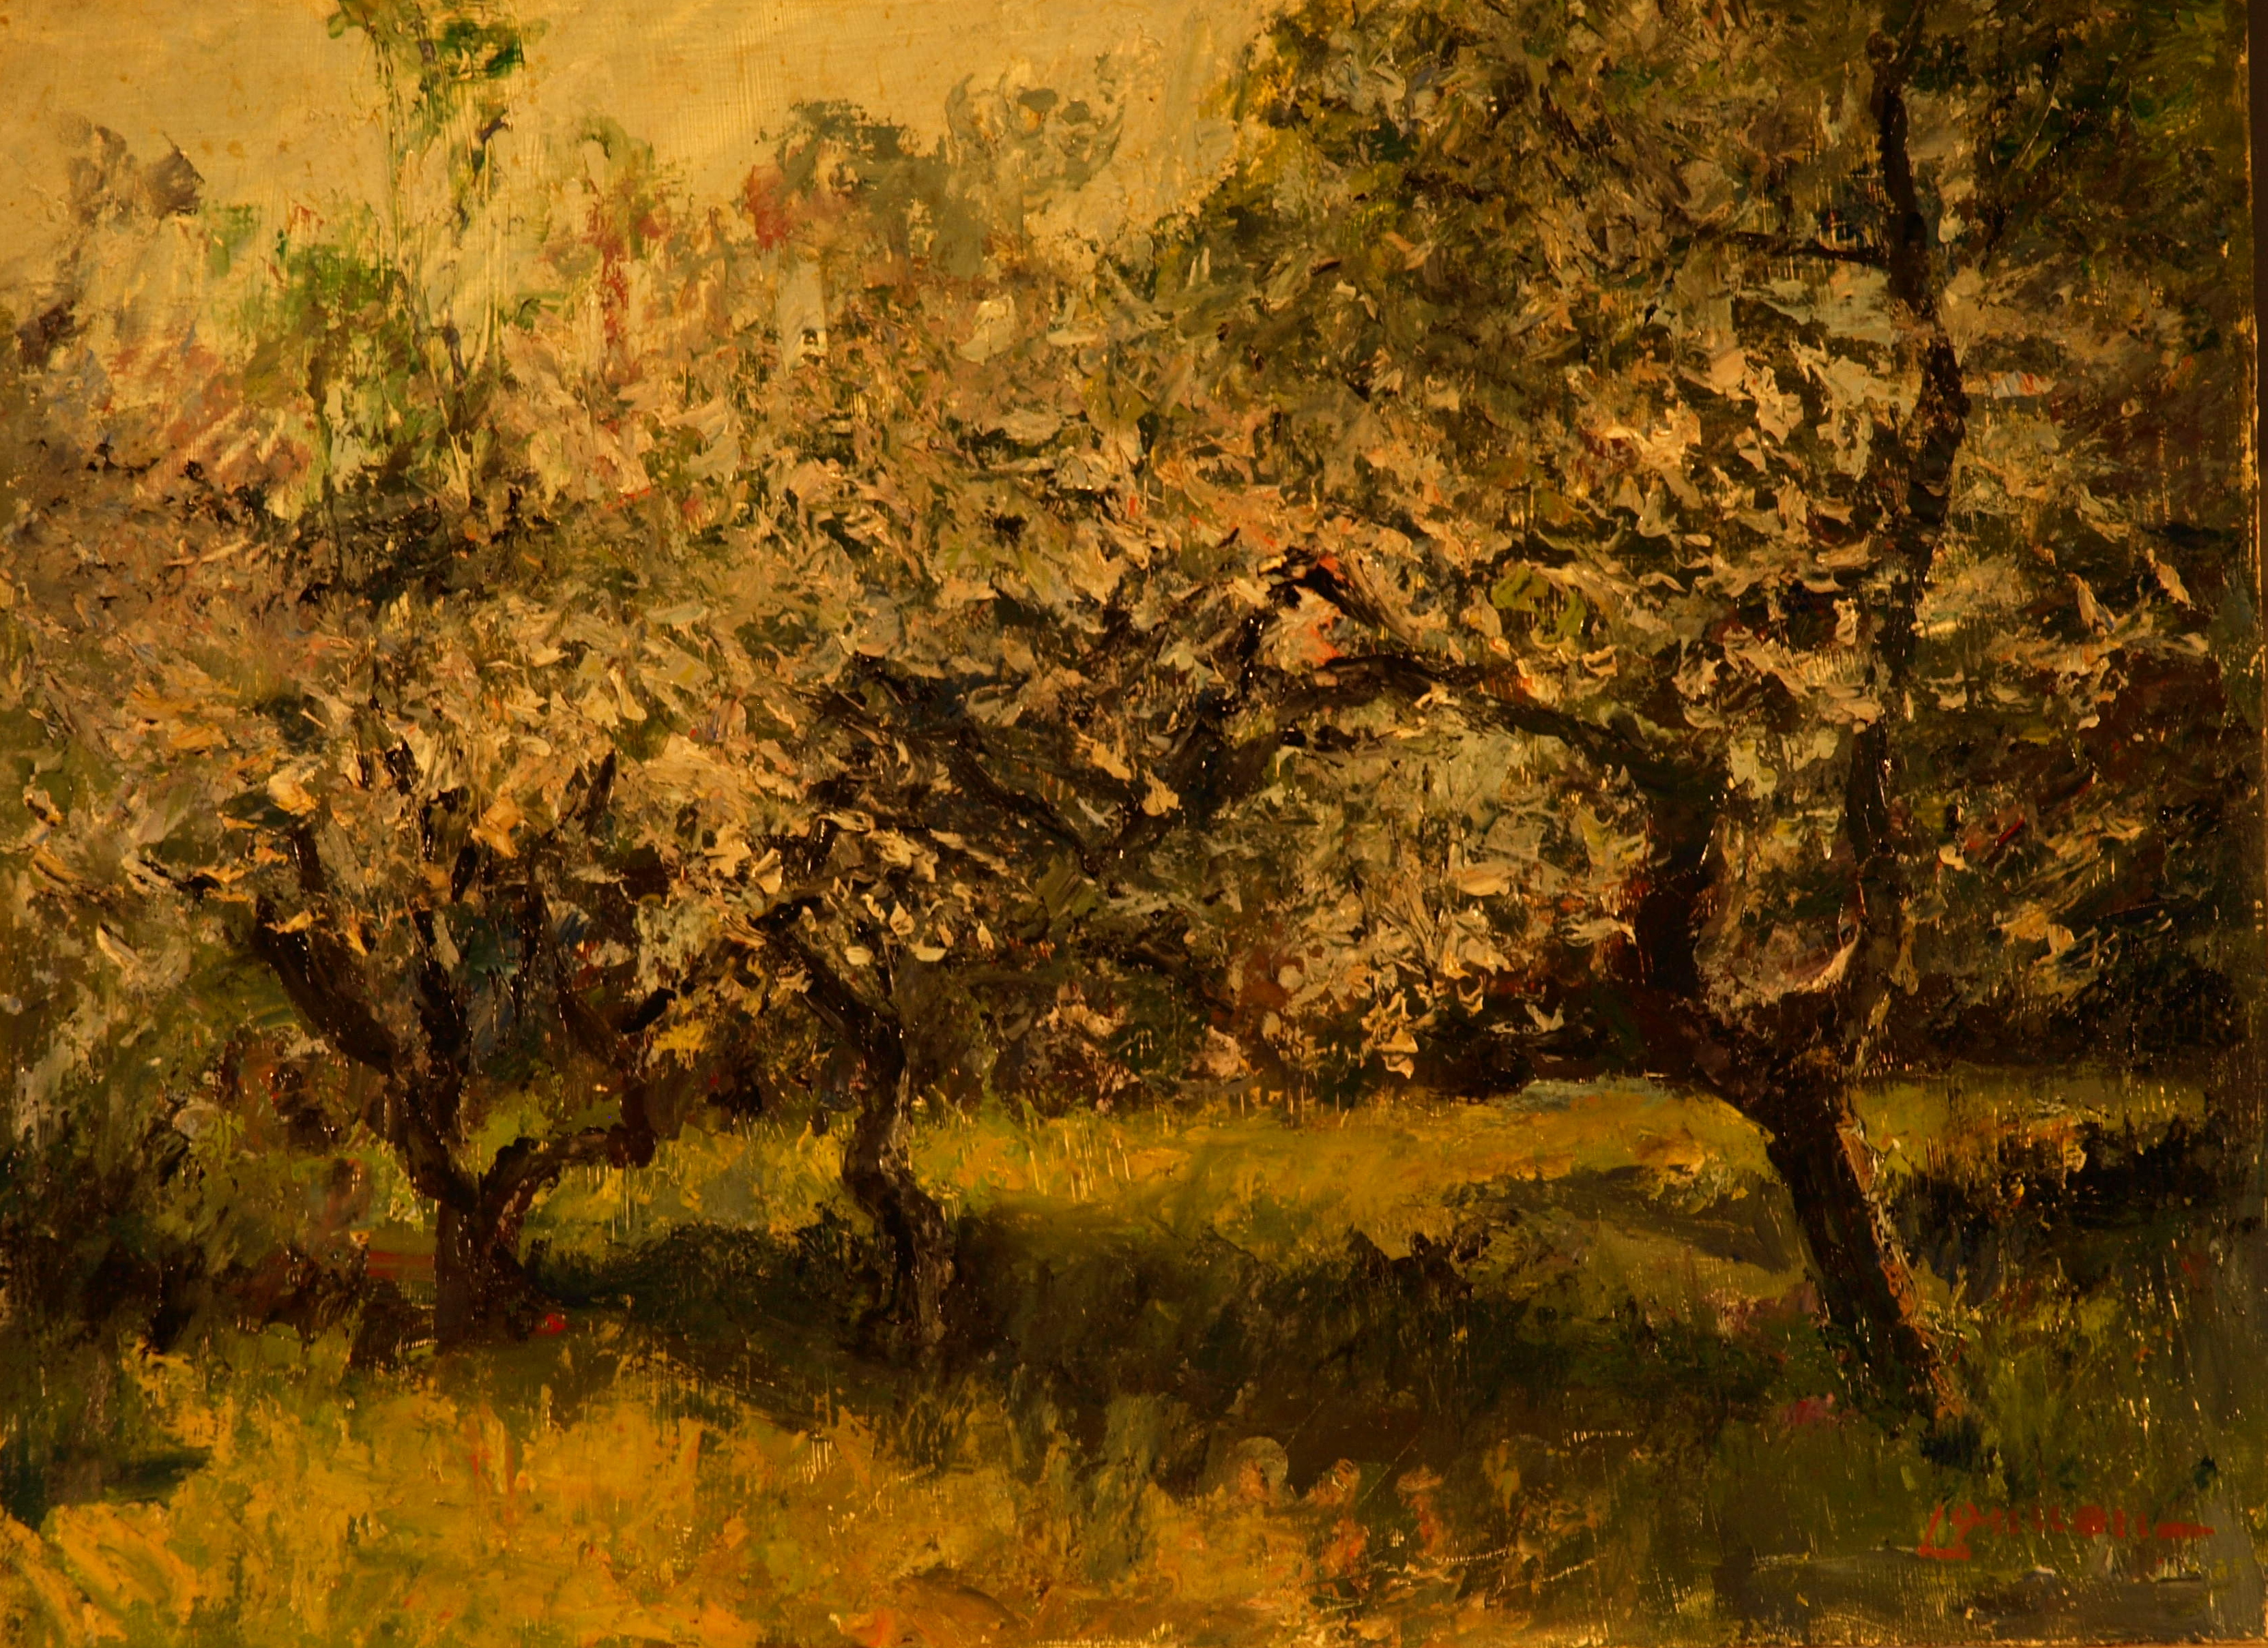 Apple Blossom Time, Oil on Panel, 12 x 16 Inches, by Bernard Lennon, $400